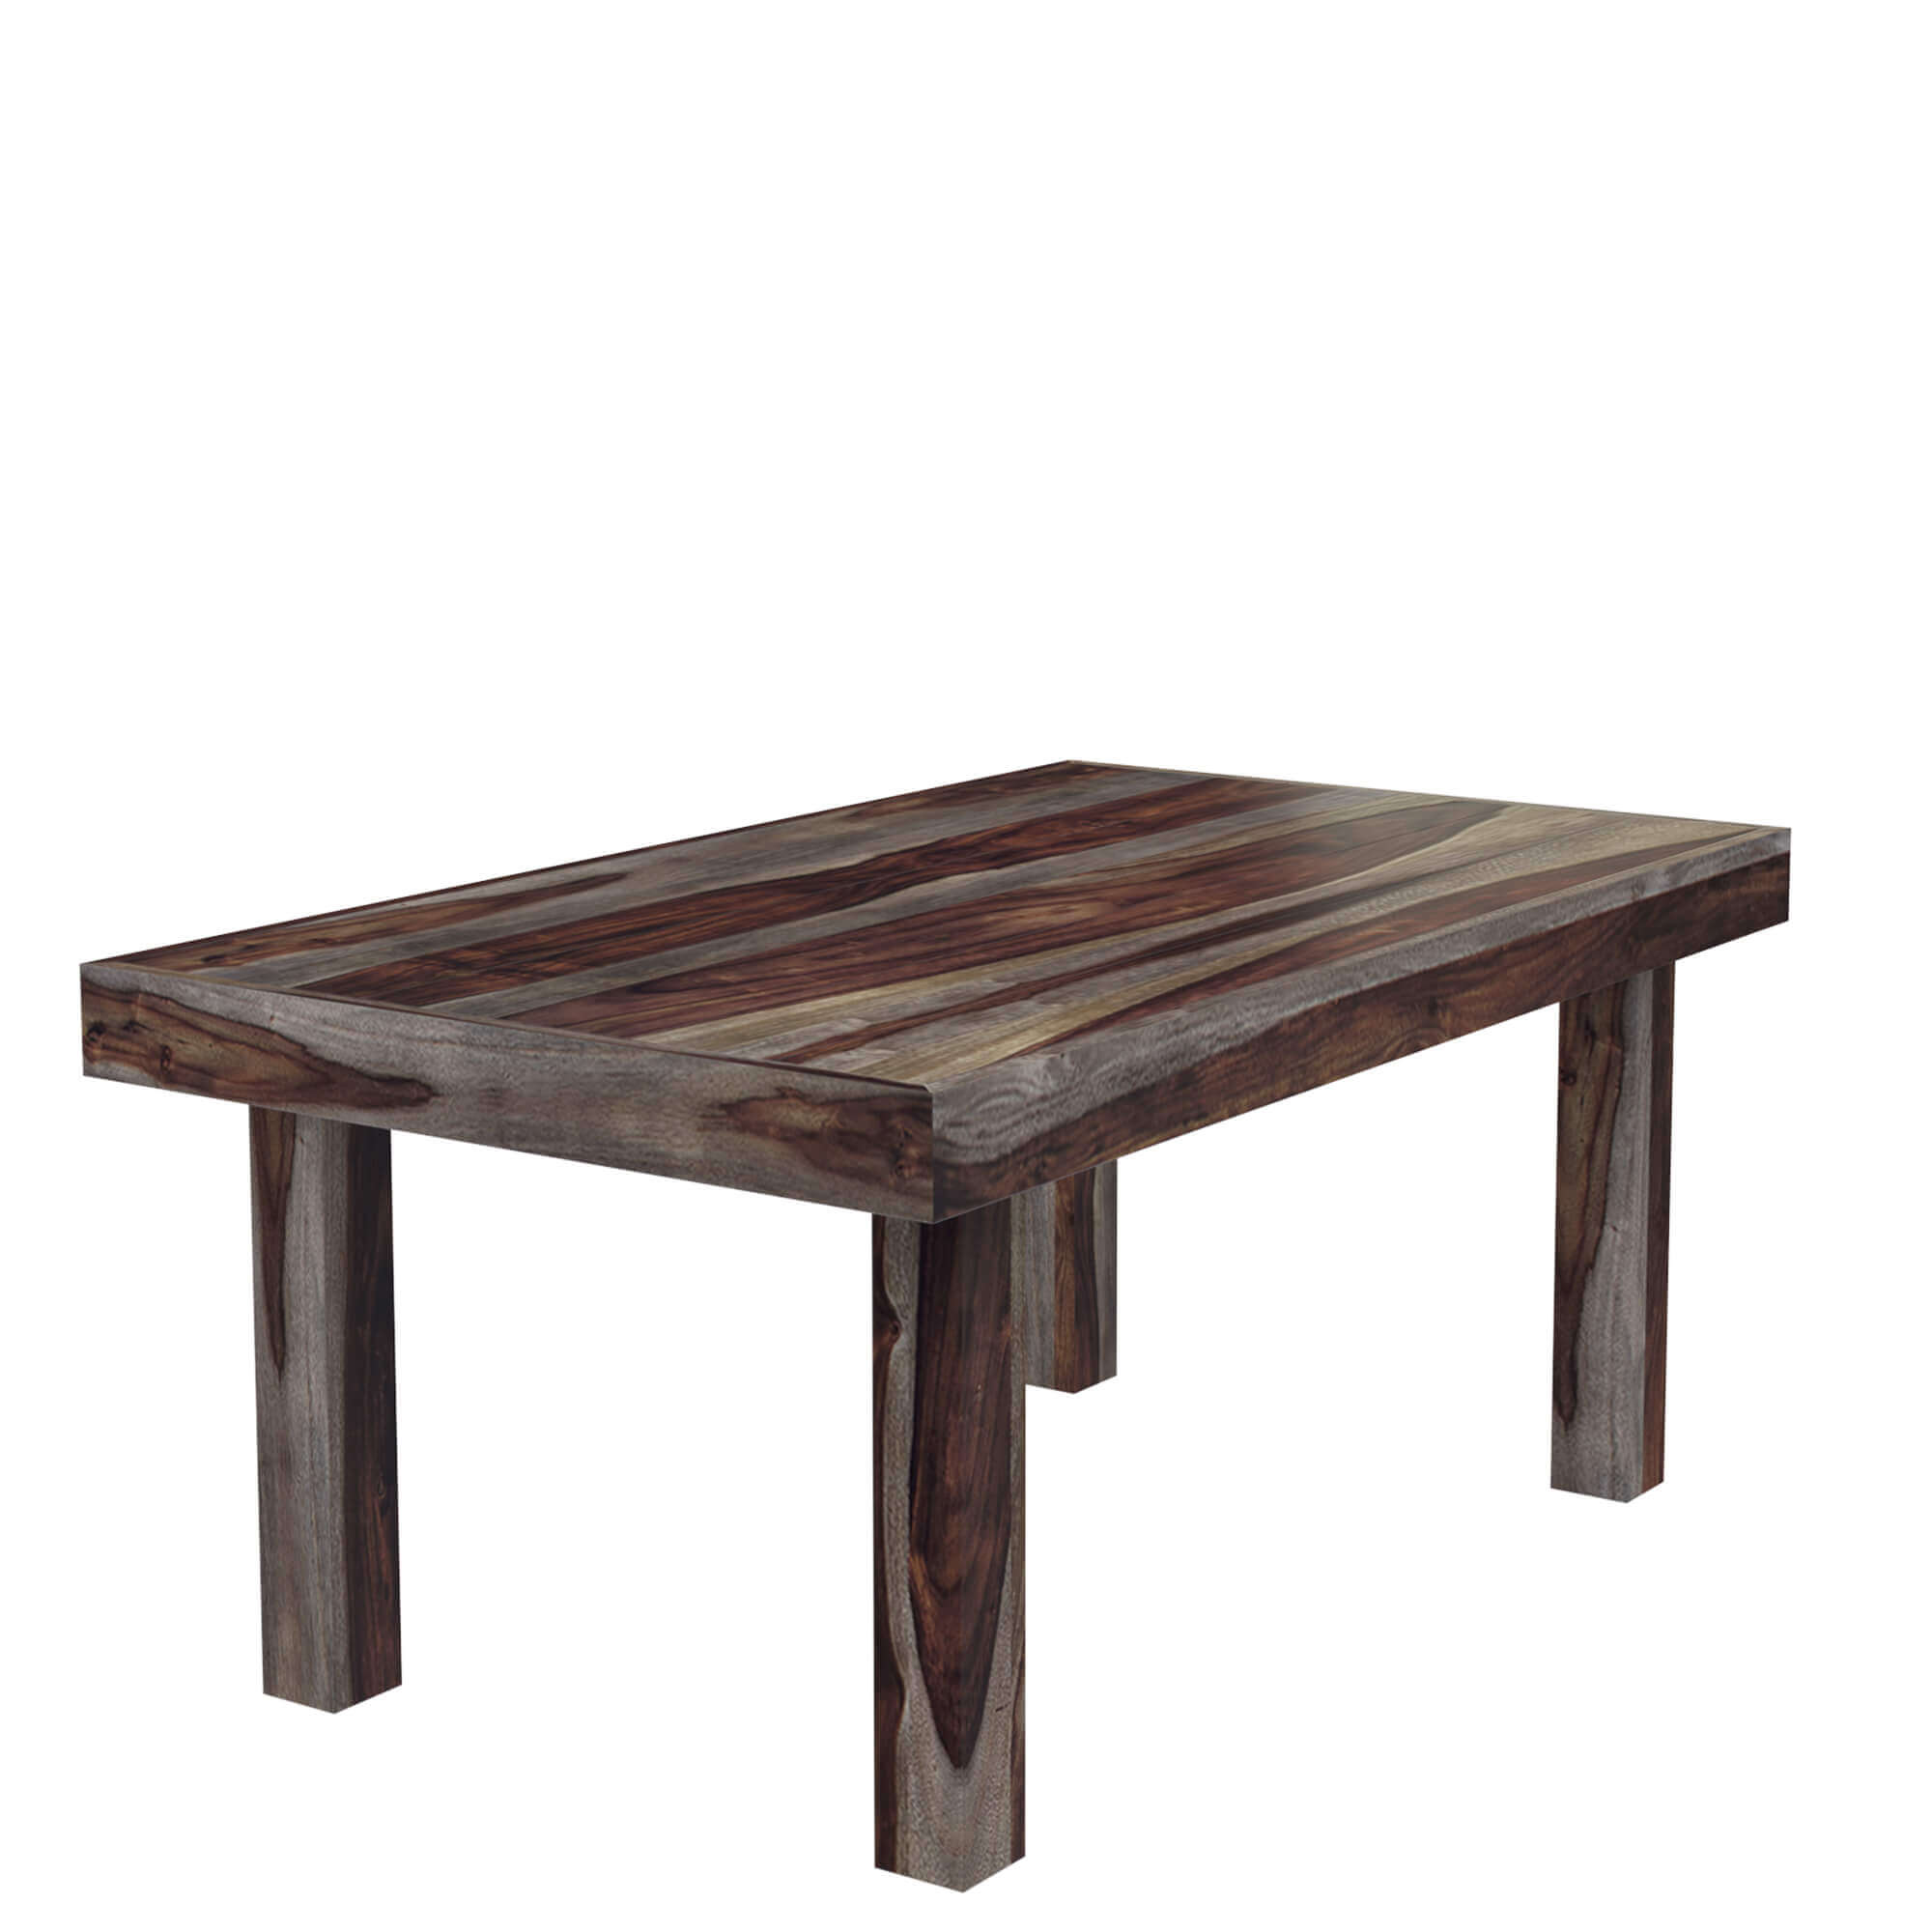 Frisco Modern Solid Wood Rectangular Rustic Dining